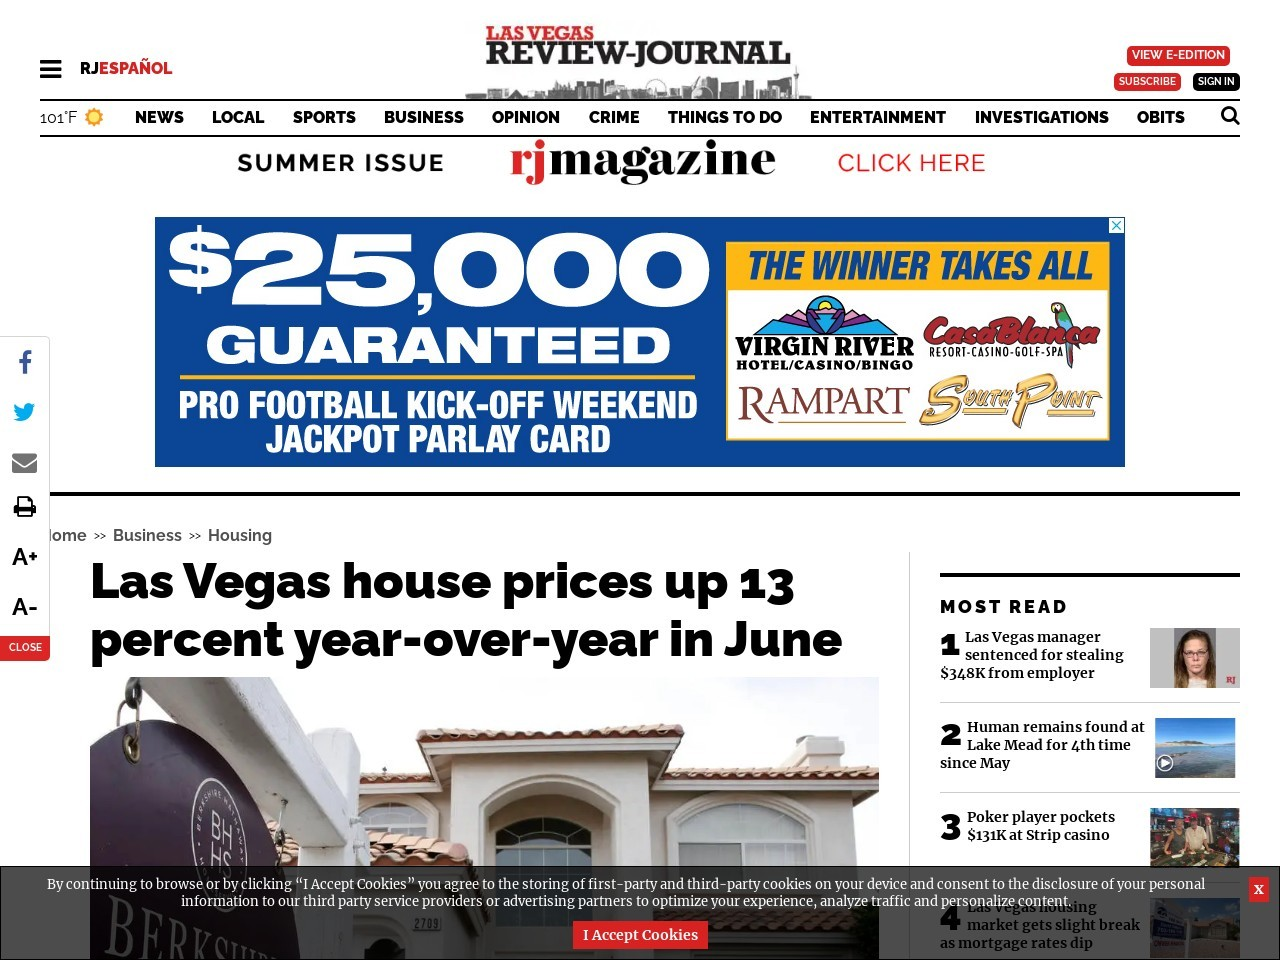 Las Vegas house prices up 13 percent year-over-year in June